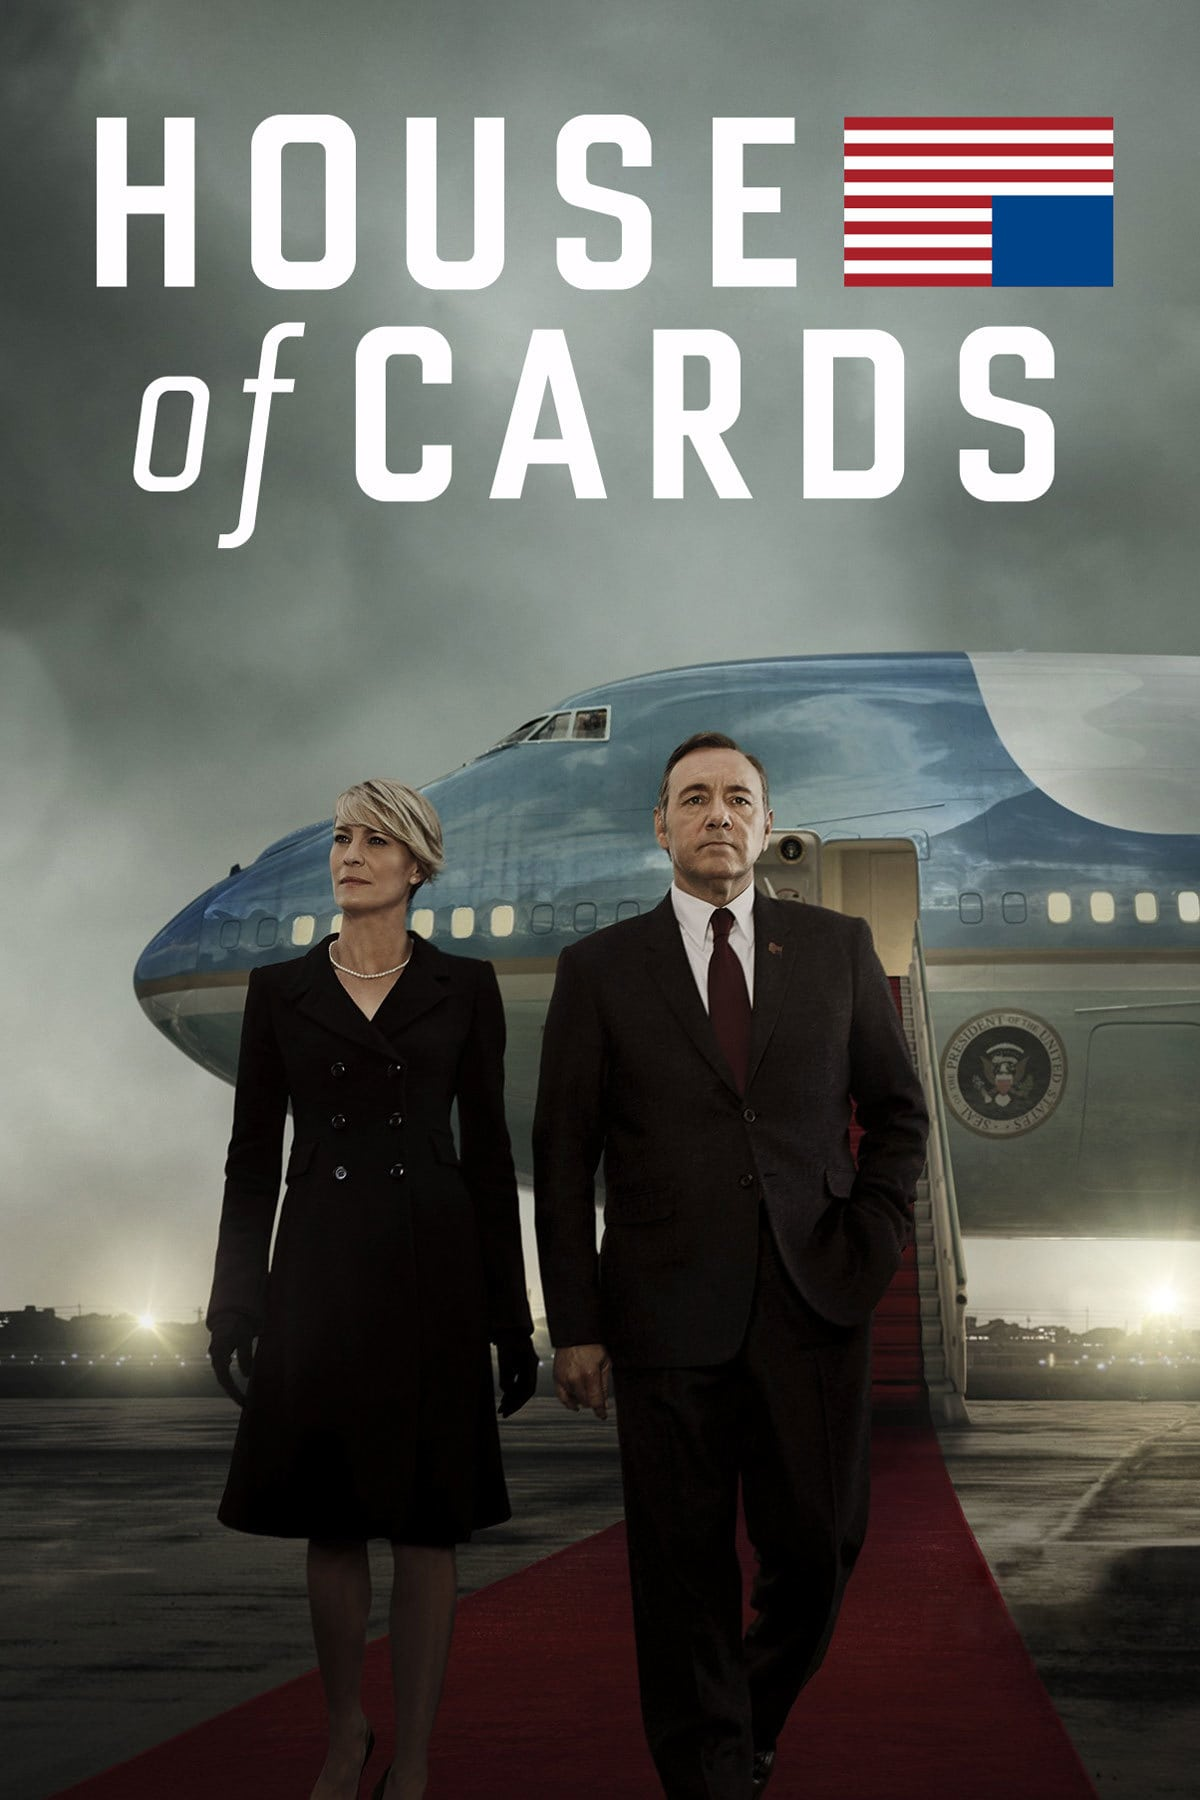 House of Cards rating